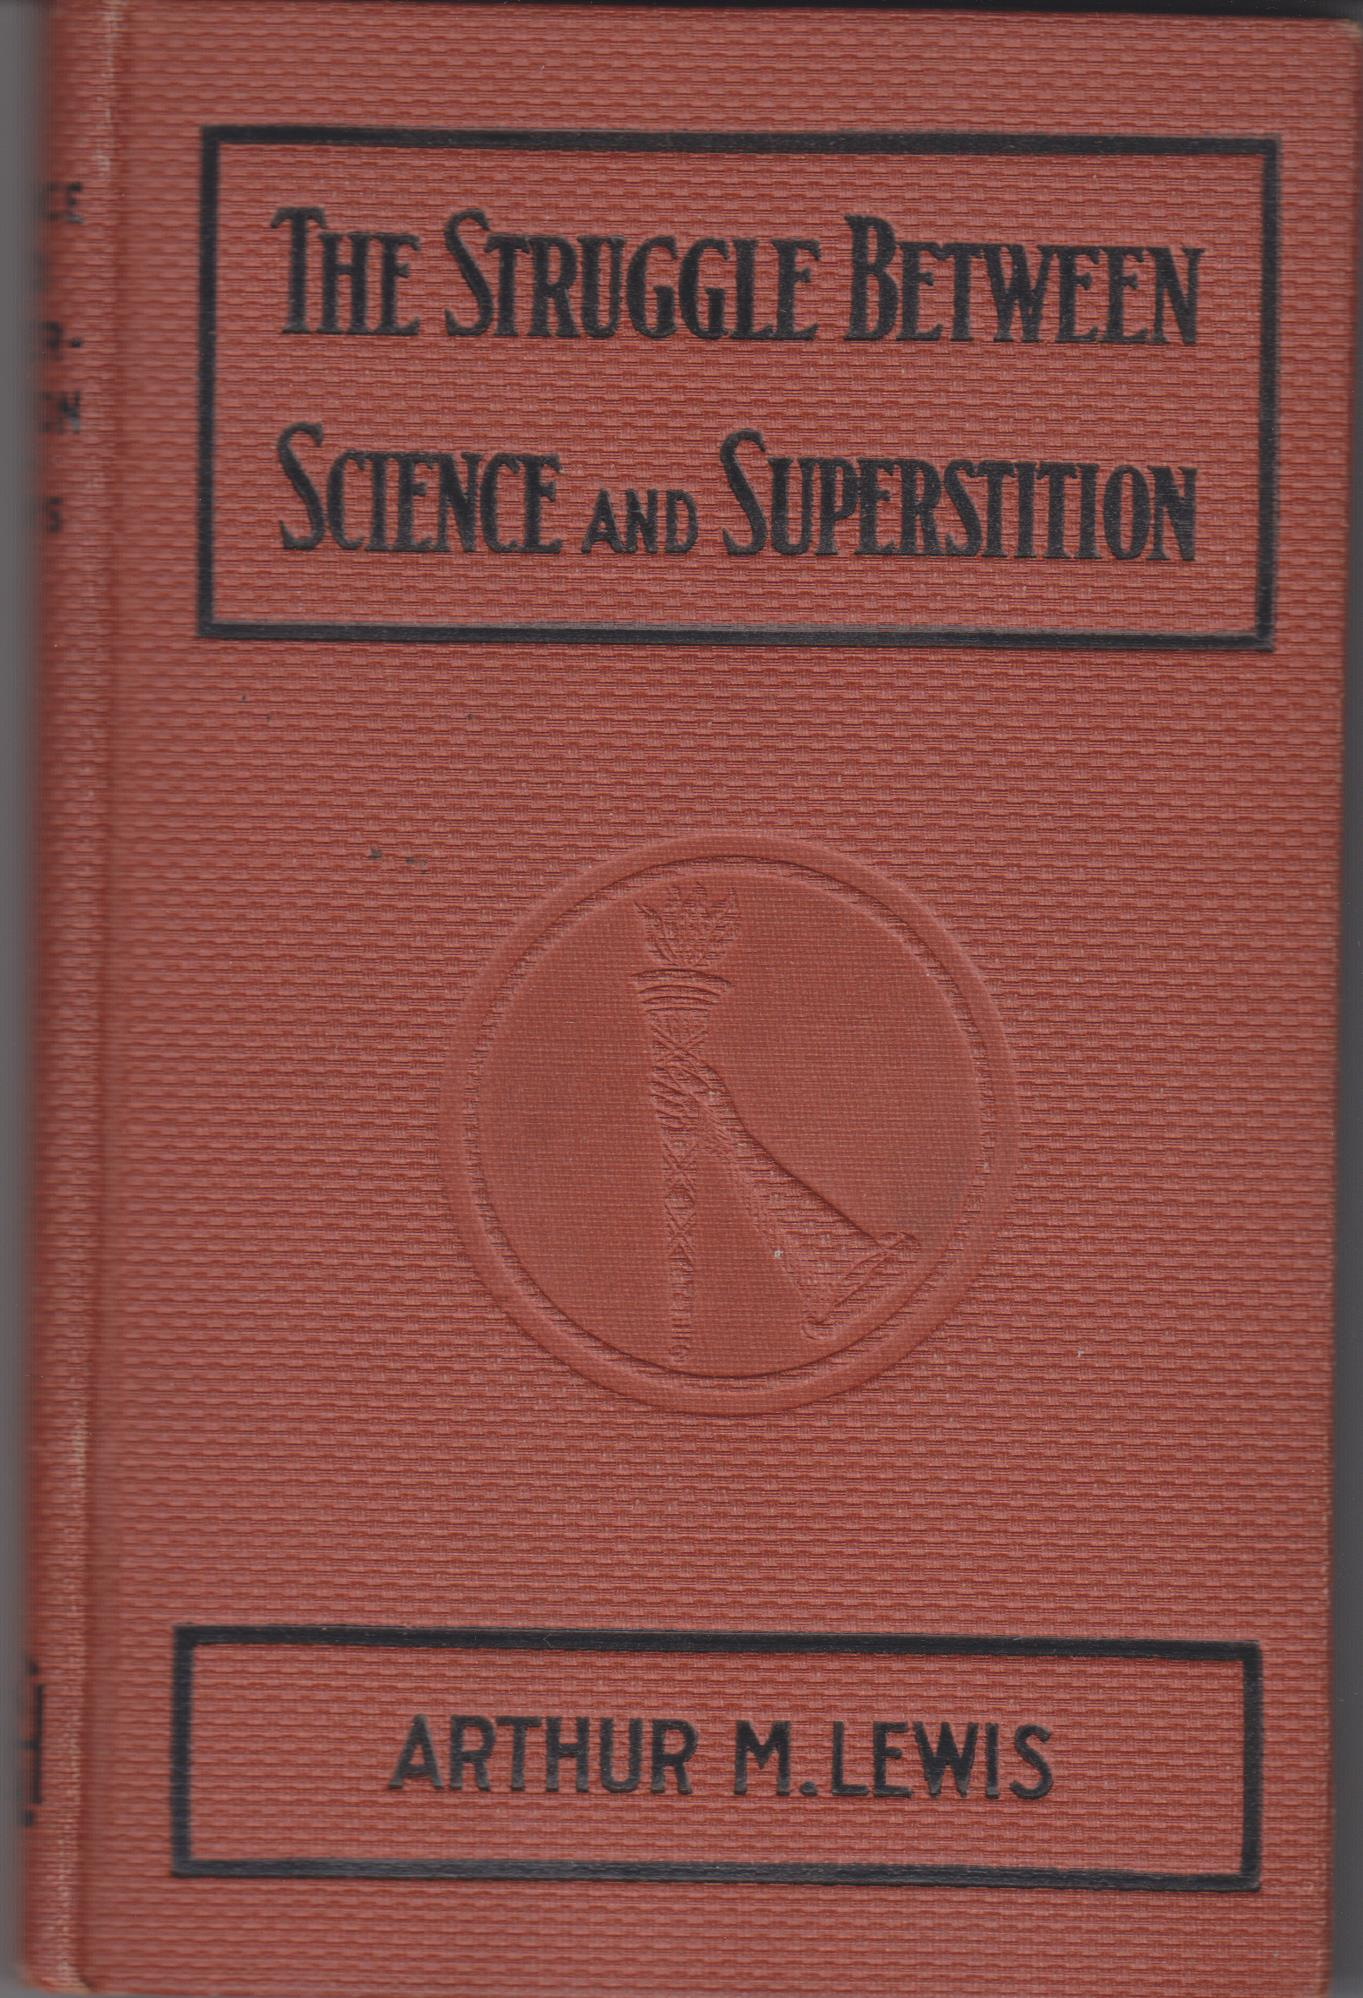 Image for The Struggle between Science and Superstition